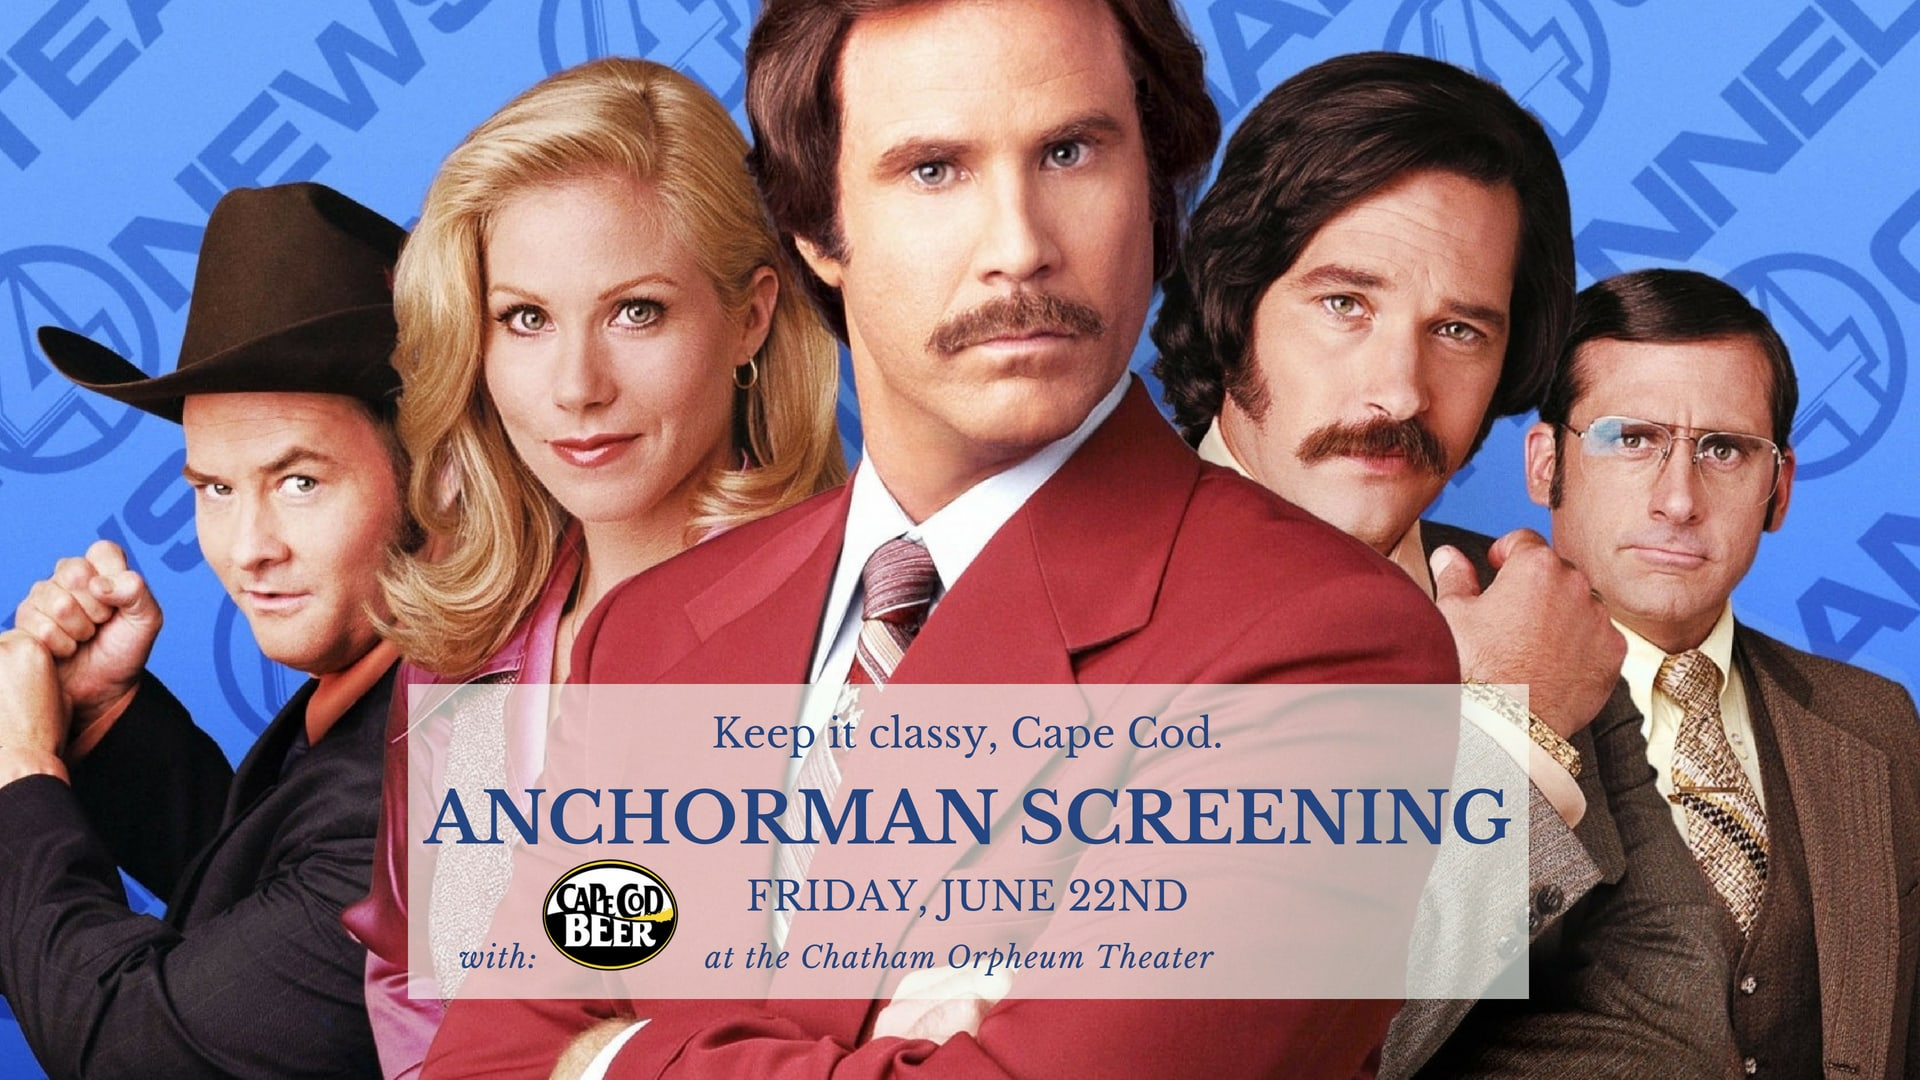 Beer Cape Cod Anchorman Chatham Orpheum Theater